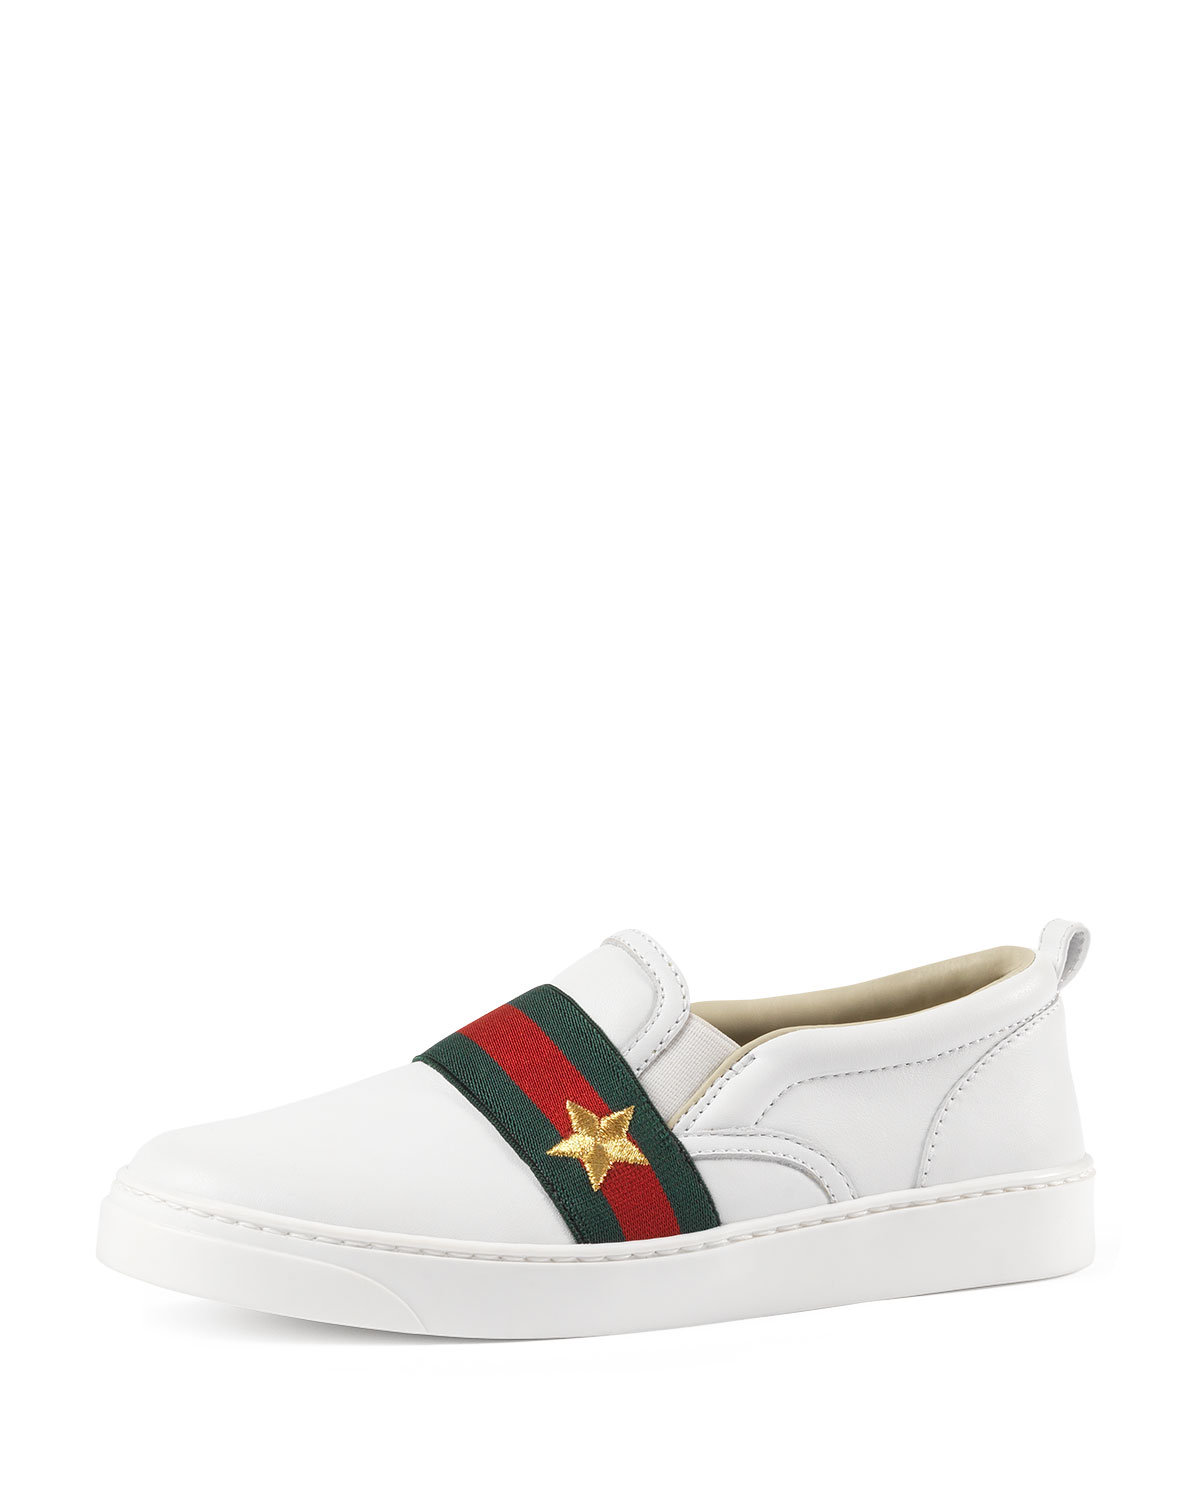 6d5d8430f95a Gucci Leather Slip-On Skate Shoe